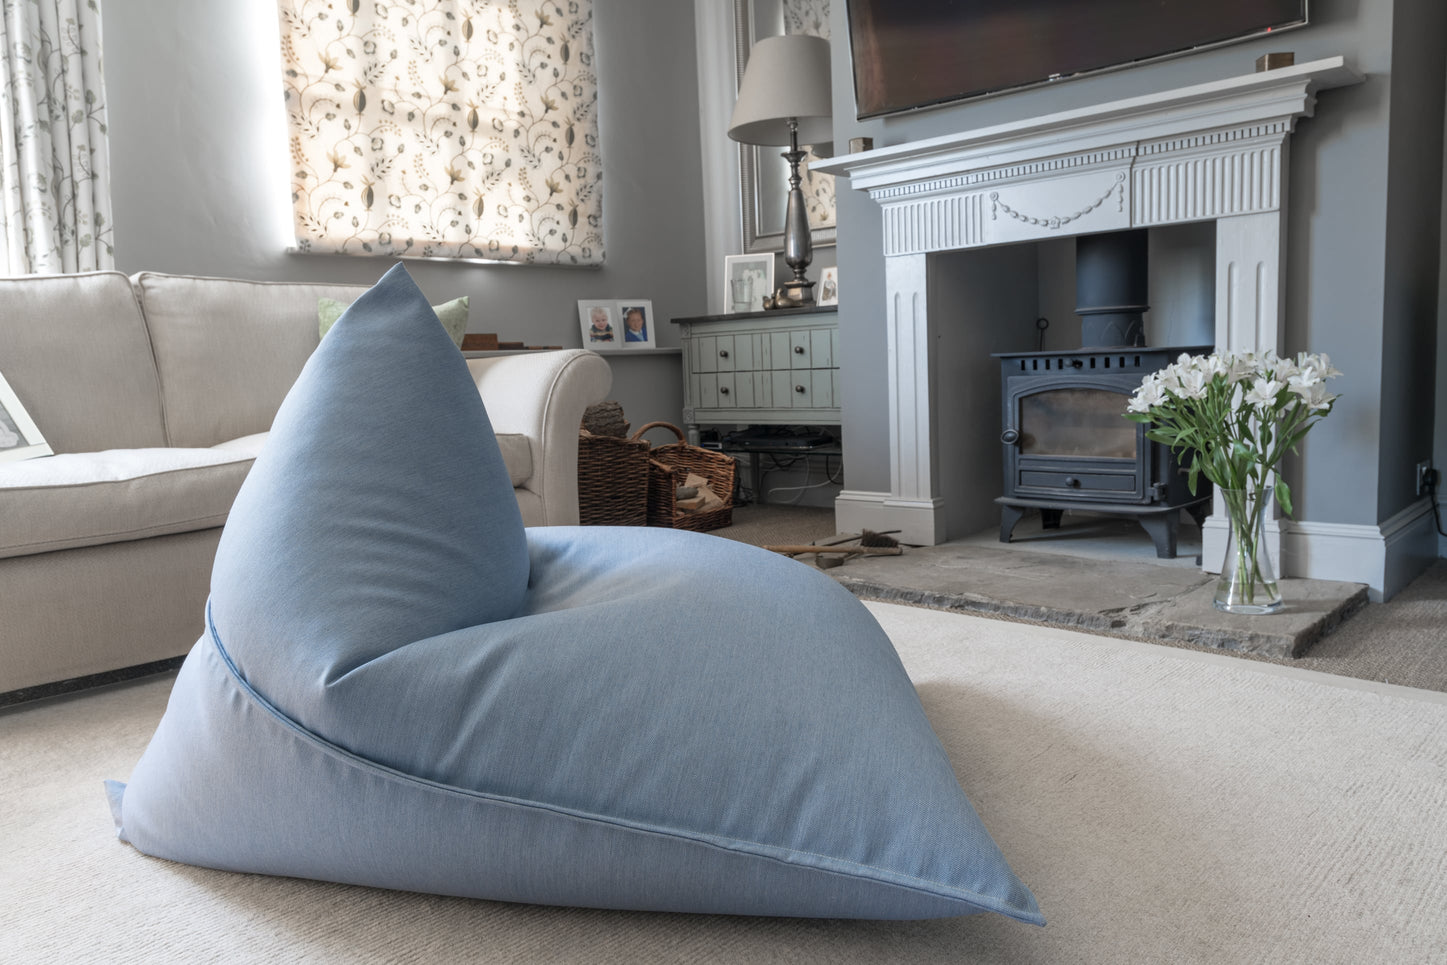 Armadillo Sun bean bag lounger in ice blue fabric inside by fireplace